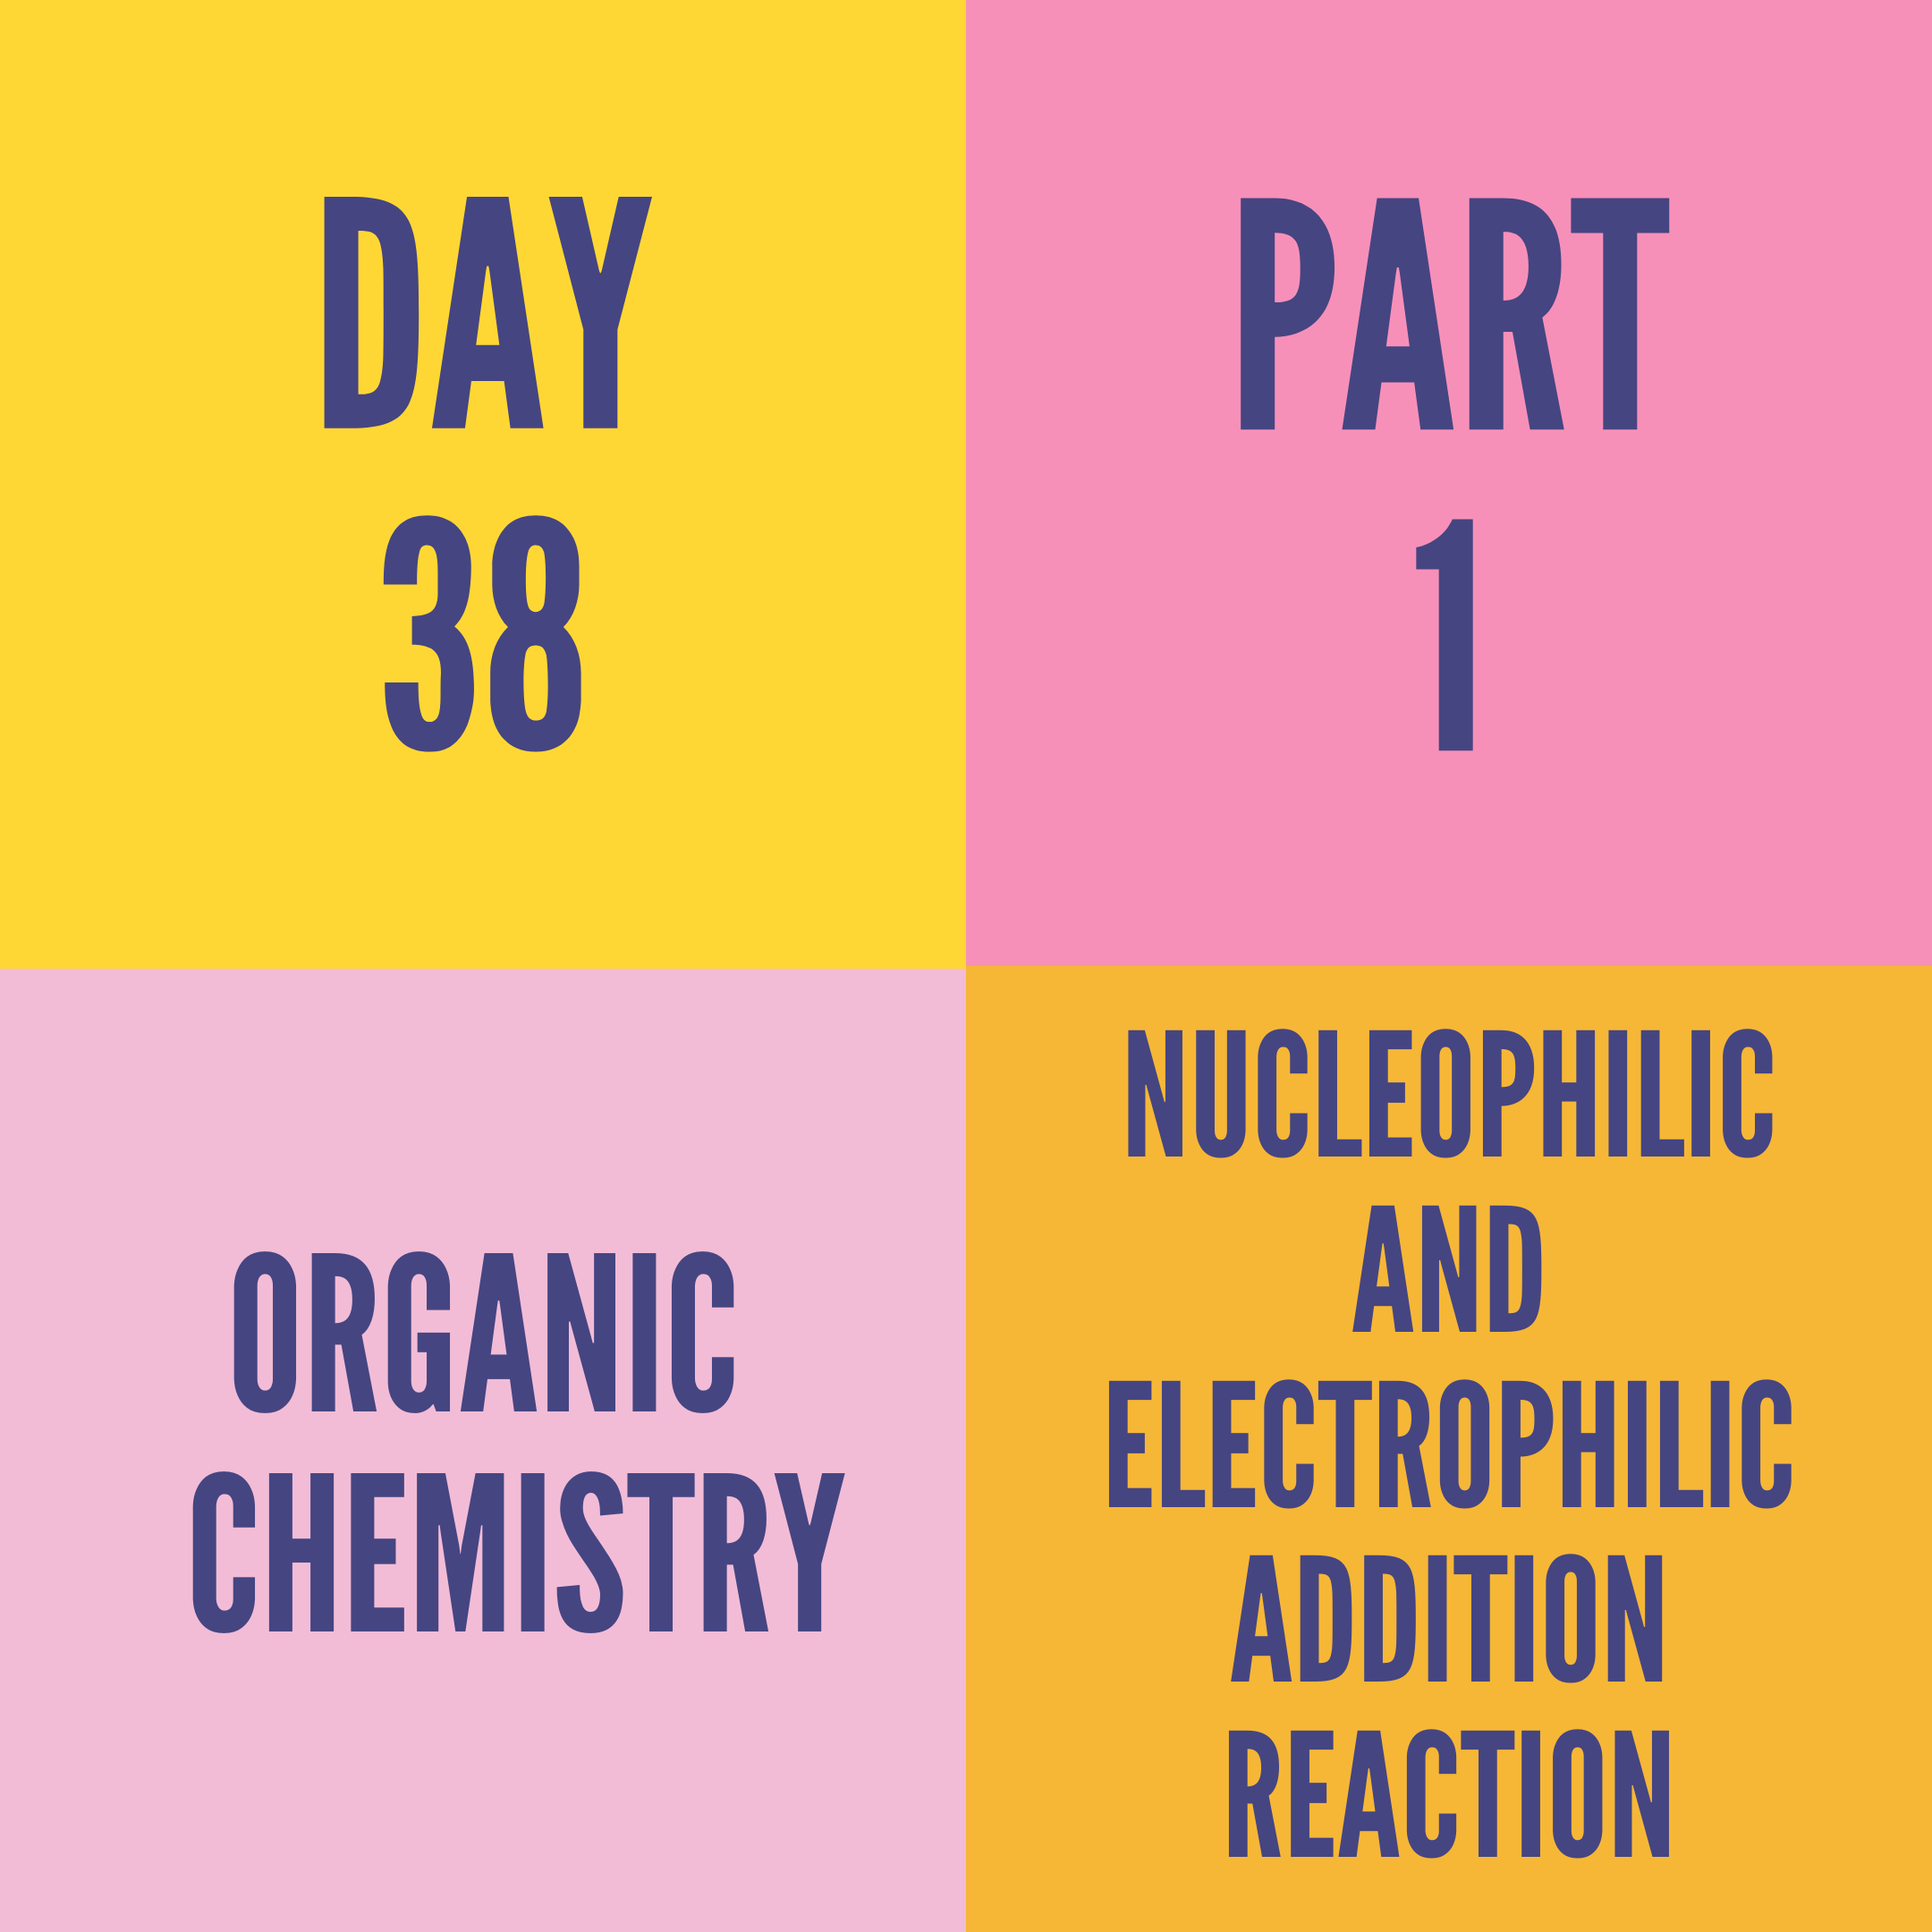 DAY-38 PART-1 NUCLEOPHILIC AND ELECTROPHILIC ADDITION REACTION